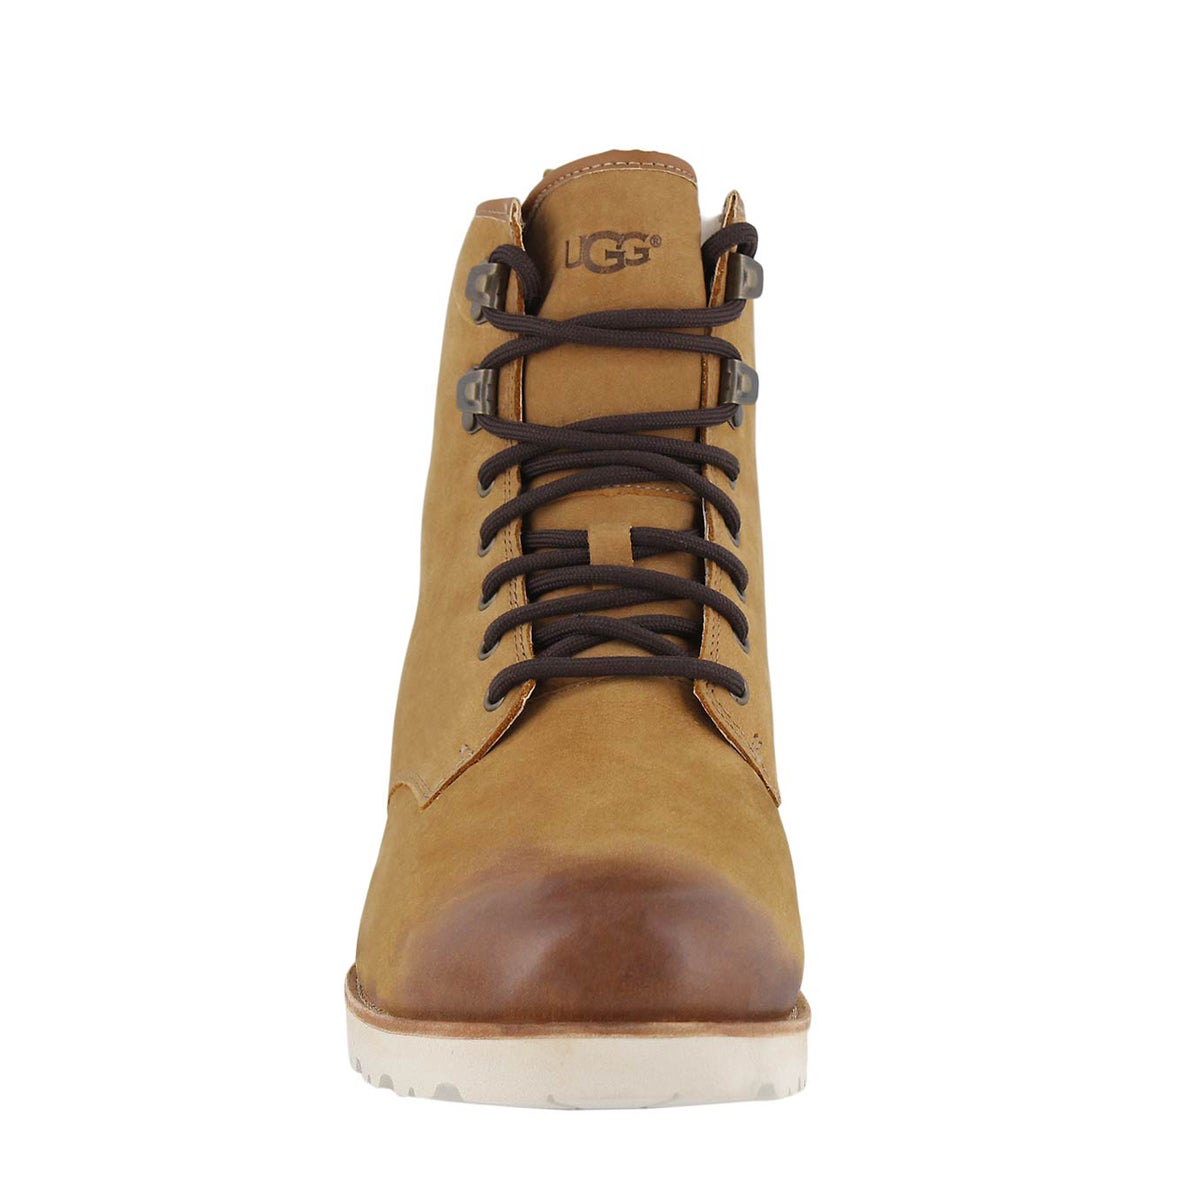 Mns Hannen TL chestnut wtpf casual boot